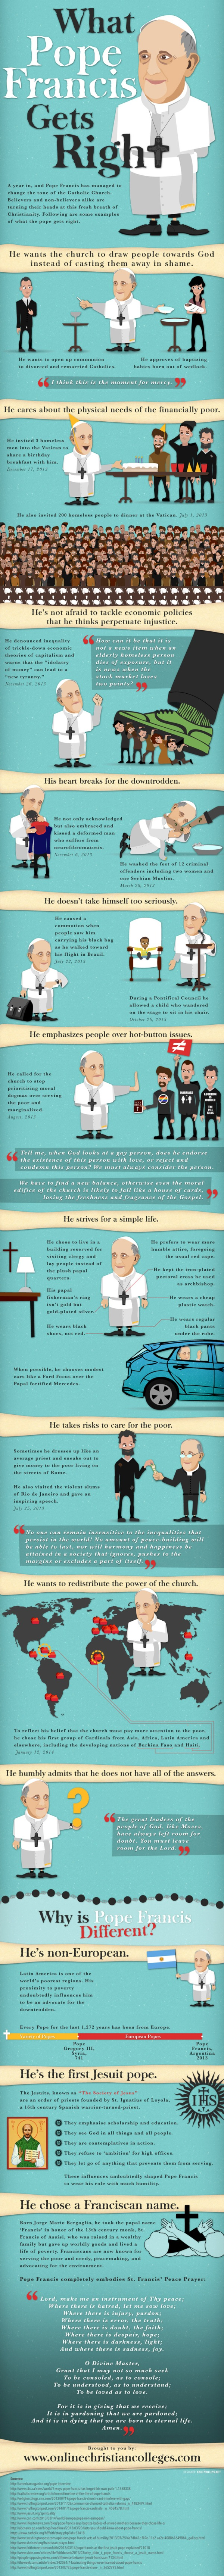 infographic @http://www.onlinechristiancolleges.com/pope-francis/